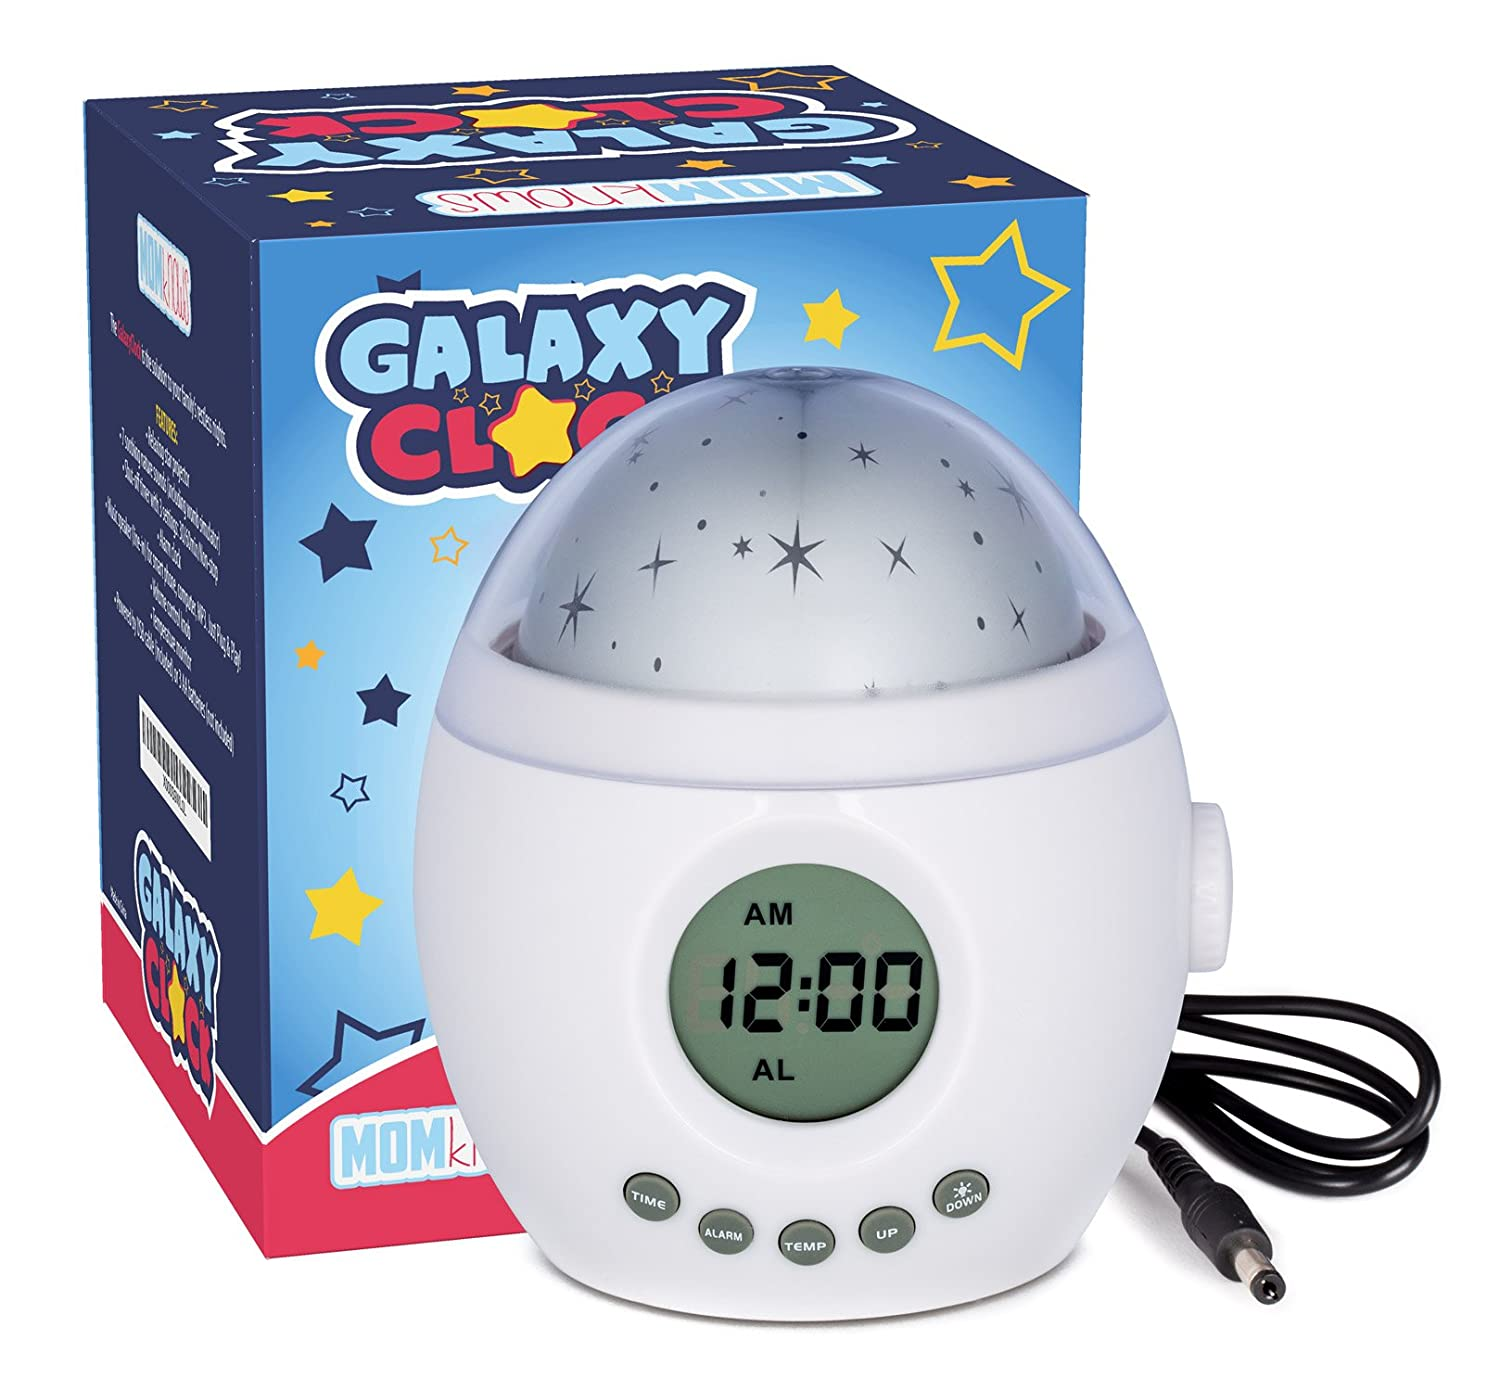 Galaxy Clock by MomKnows. Soothing Star Projector Sound Machine. Relaxing Night Light With Nature Sounds and White Noise. Kids Baby Ceiling Projection Alarm Clock Lamp SYNCHKG126420